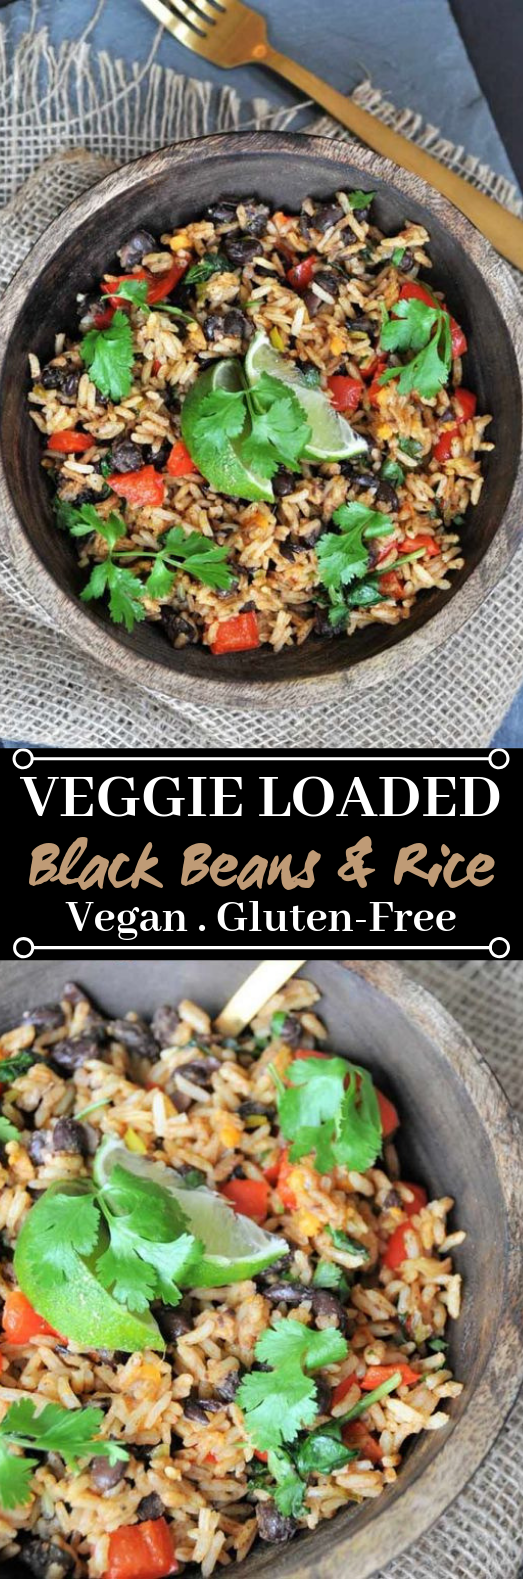 Veggie Loaded Black Beans and Rice #vegetarian #dinner